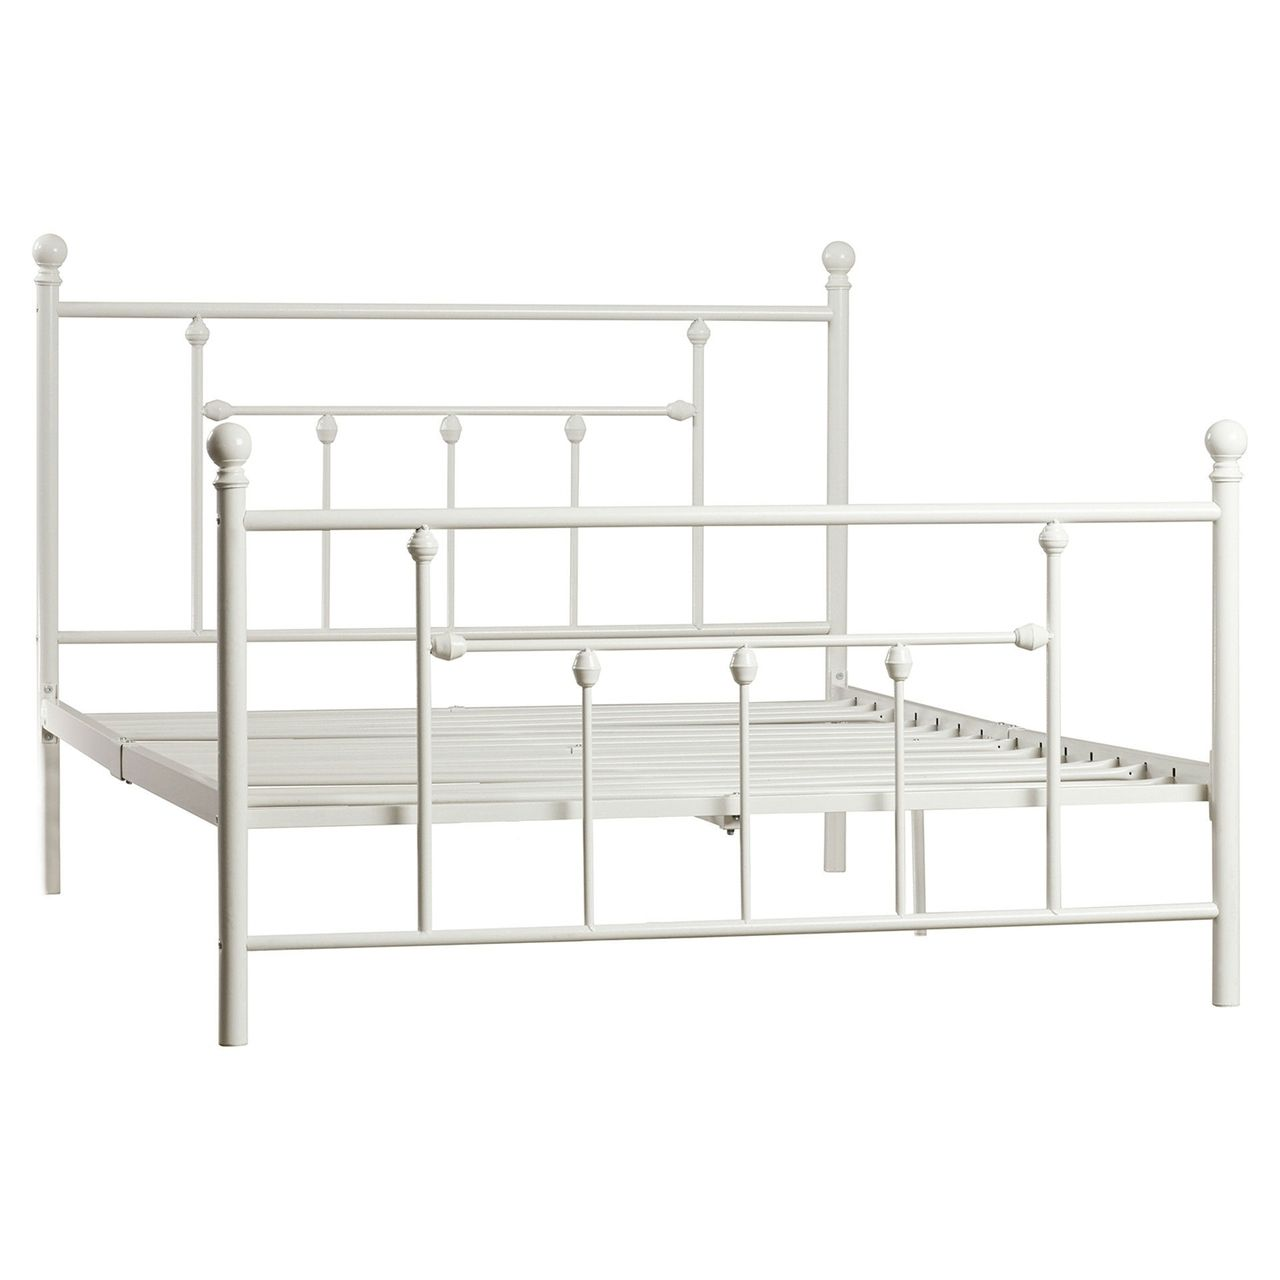 Queen White Metal Platform Bed Frame with Headboard and Footboard ...